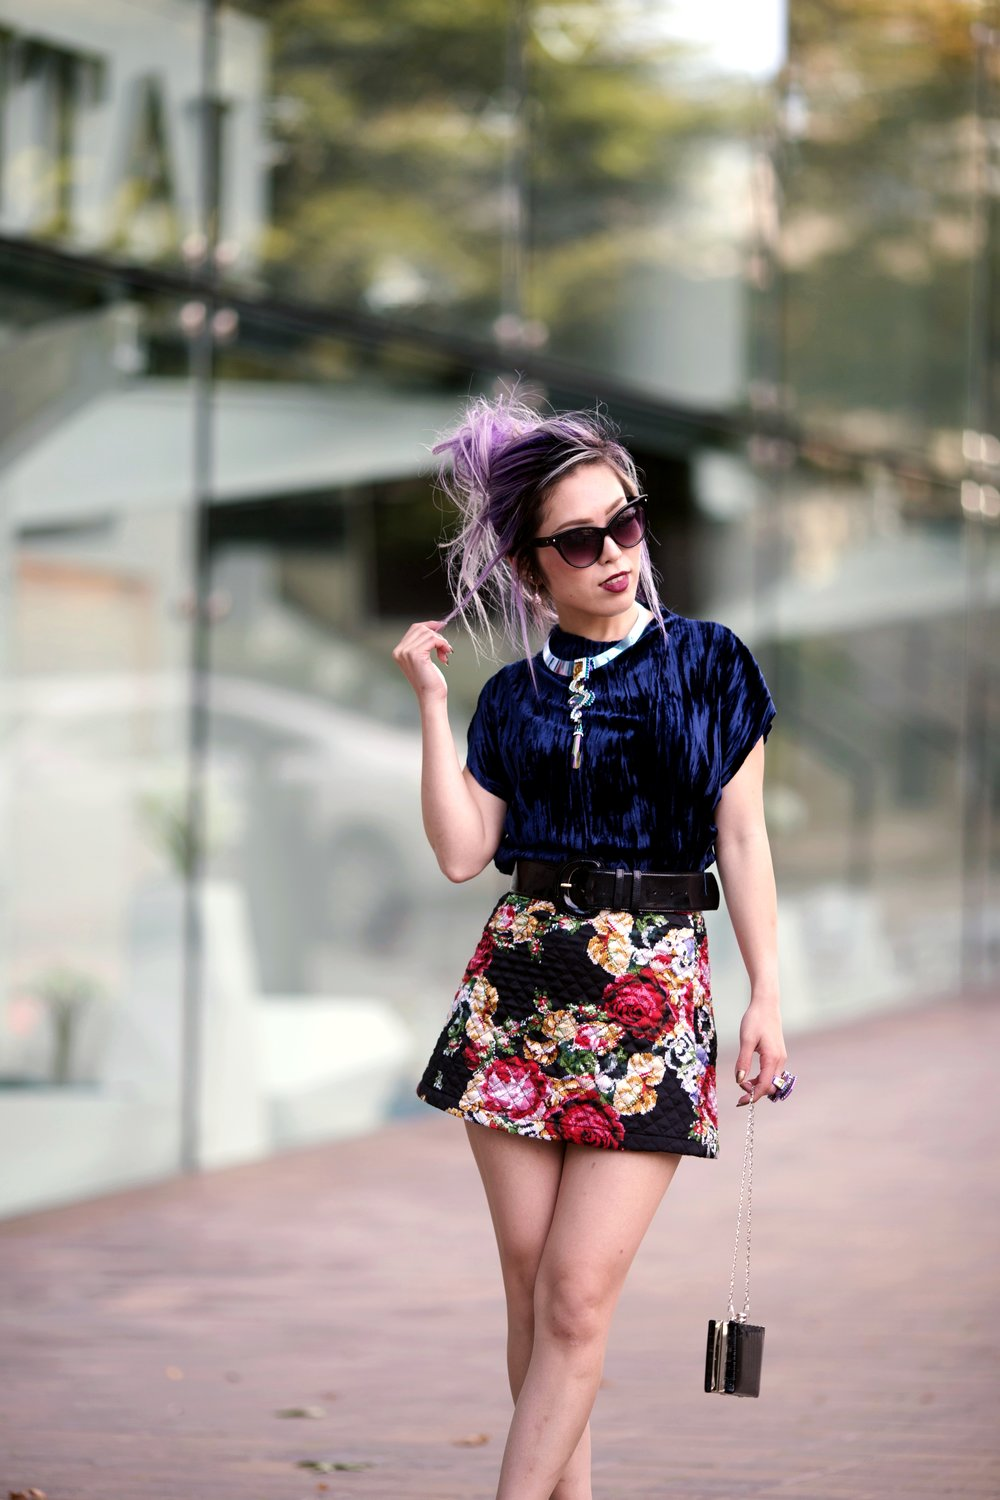 ZARA Blue Velvet Top_Forever 21 Floral Print Mini Skirt_Mango Patent Belt_Kate Spade Sheer Ankle Socks_Qupid Silver Pumps_Aldo Cateye Sunglasses_Swarovski Fluorescent Necklace & Fluorescent Ring_Aika's Love Closet_Seattle Fashion Blogger_Japanese_Lavender Hair_Mermaid Hair 3